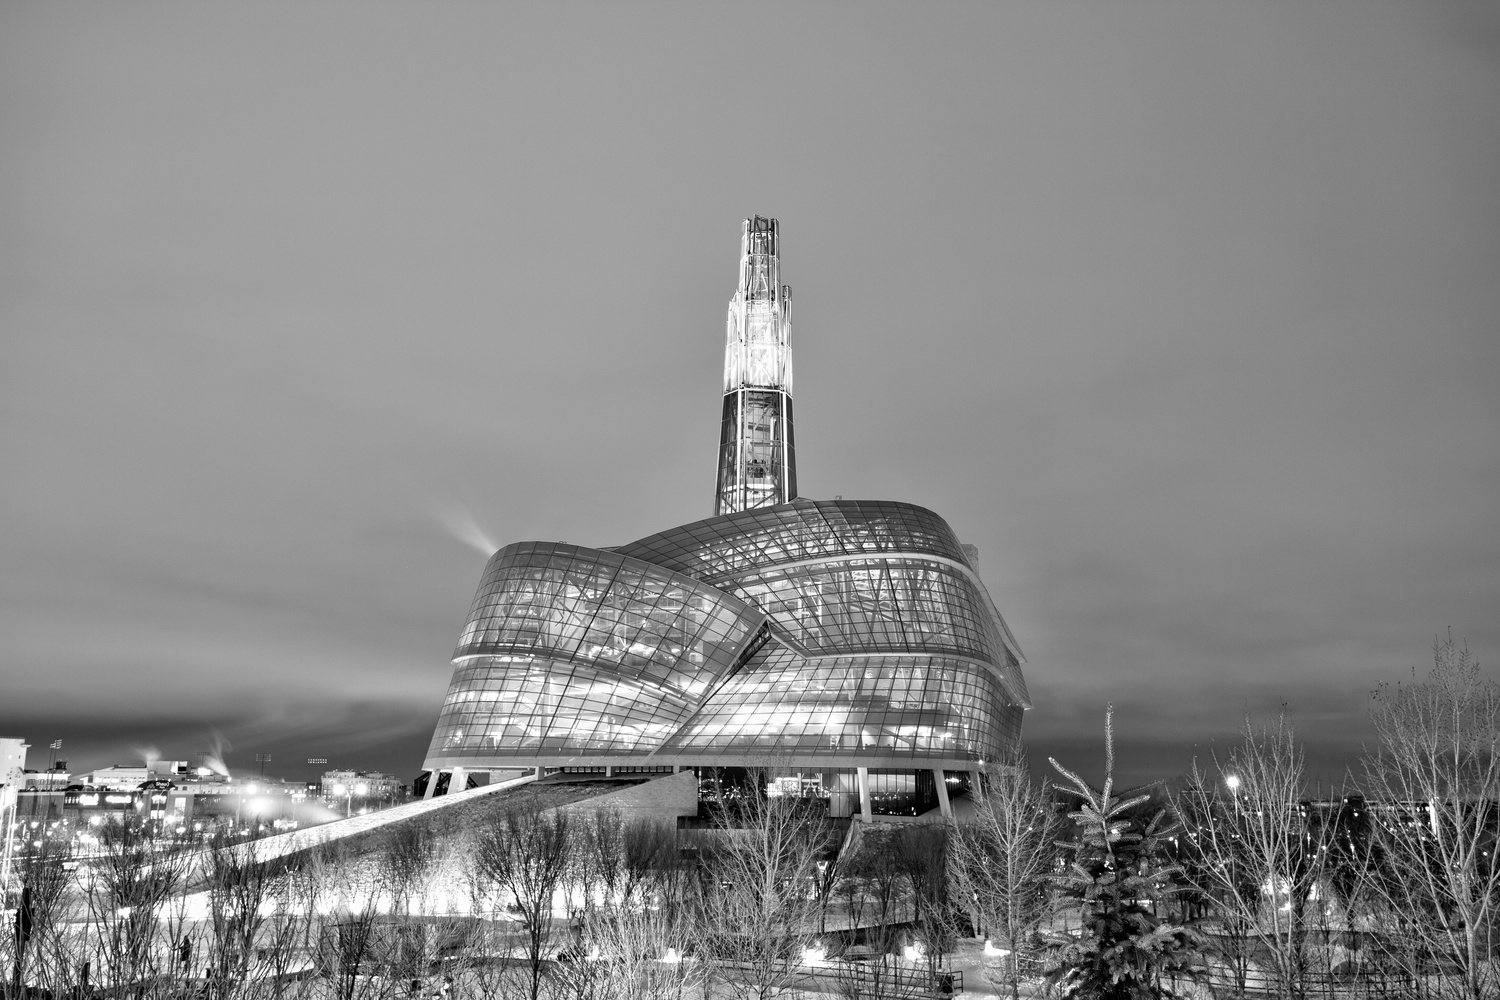 Canadian Museum of Human Rights by David Pavlich